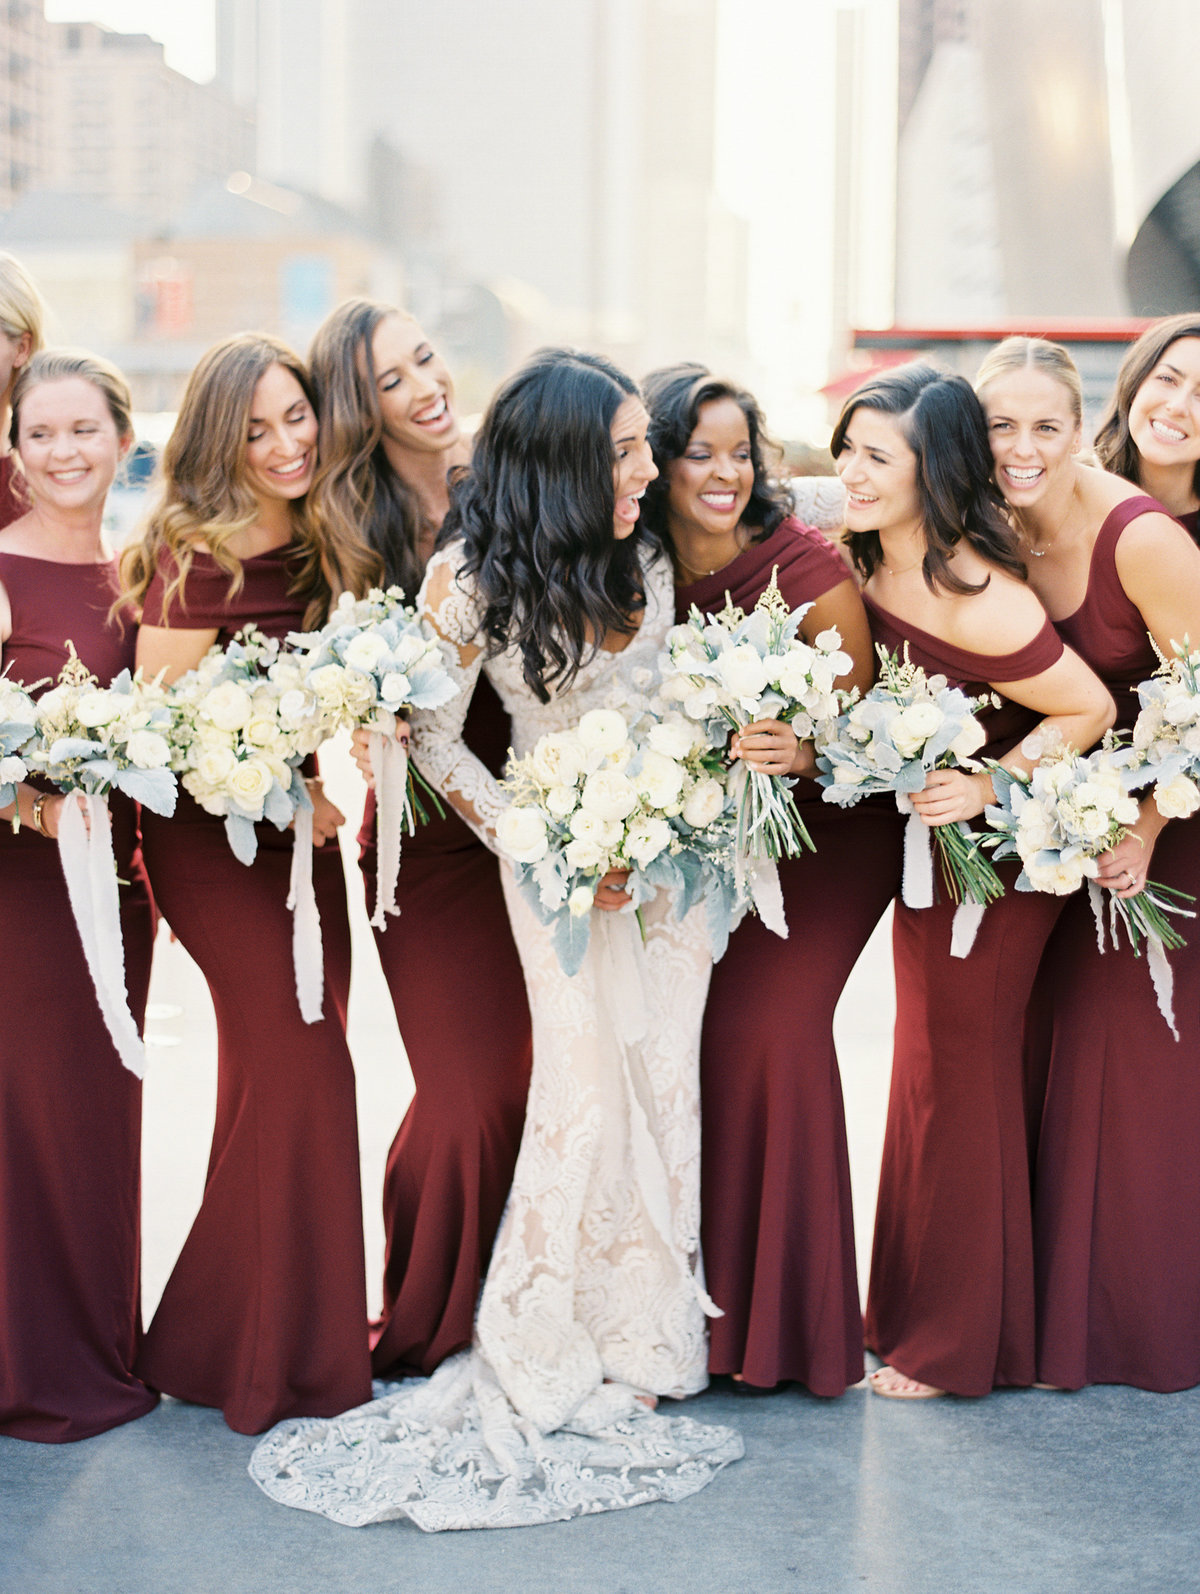 Natalie Bray Studios, Natalie Bray Photography, Southern California Wedding Photographer, Fine Art wedding, Destination Wedding Photographer, Southern california wedding photographer -68